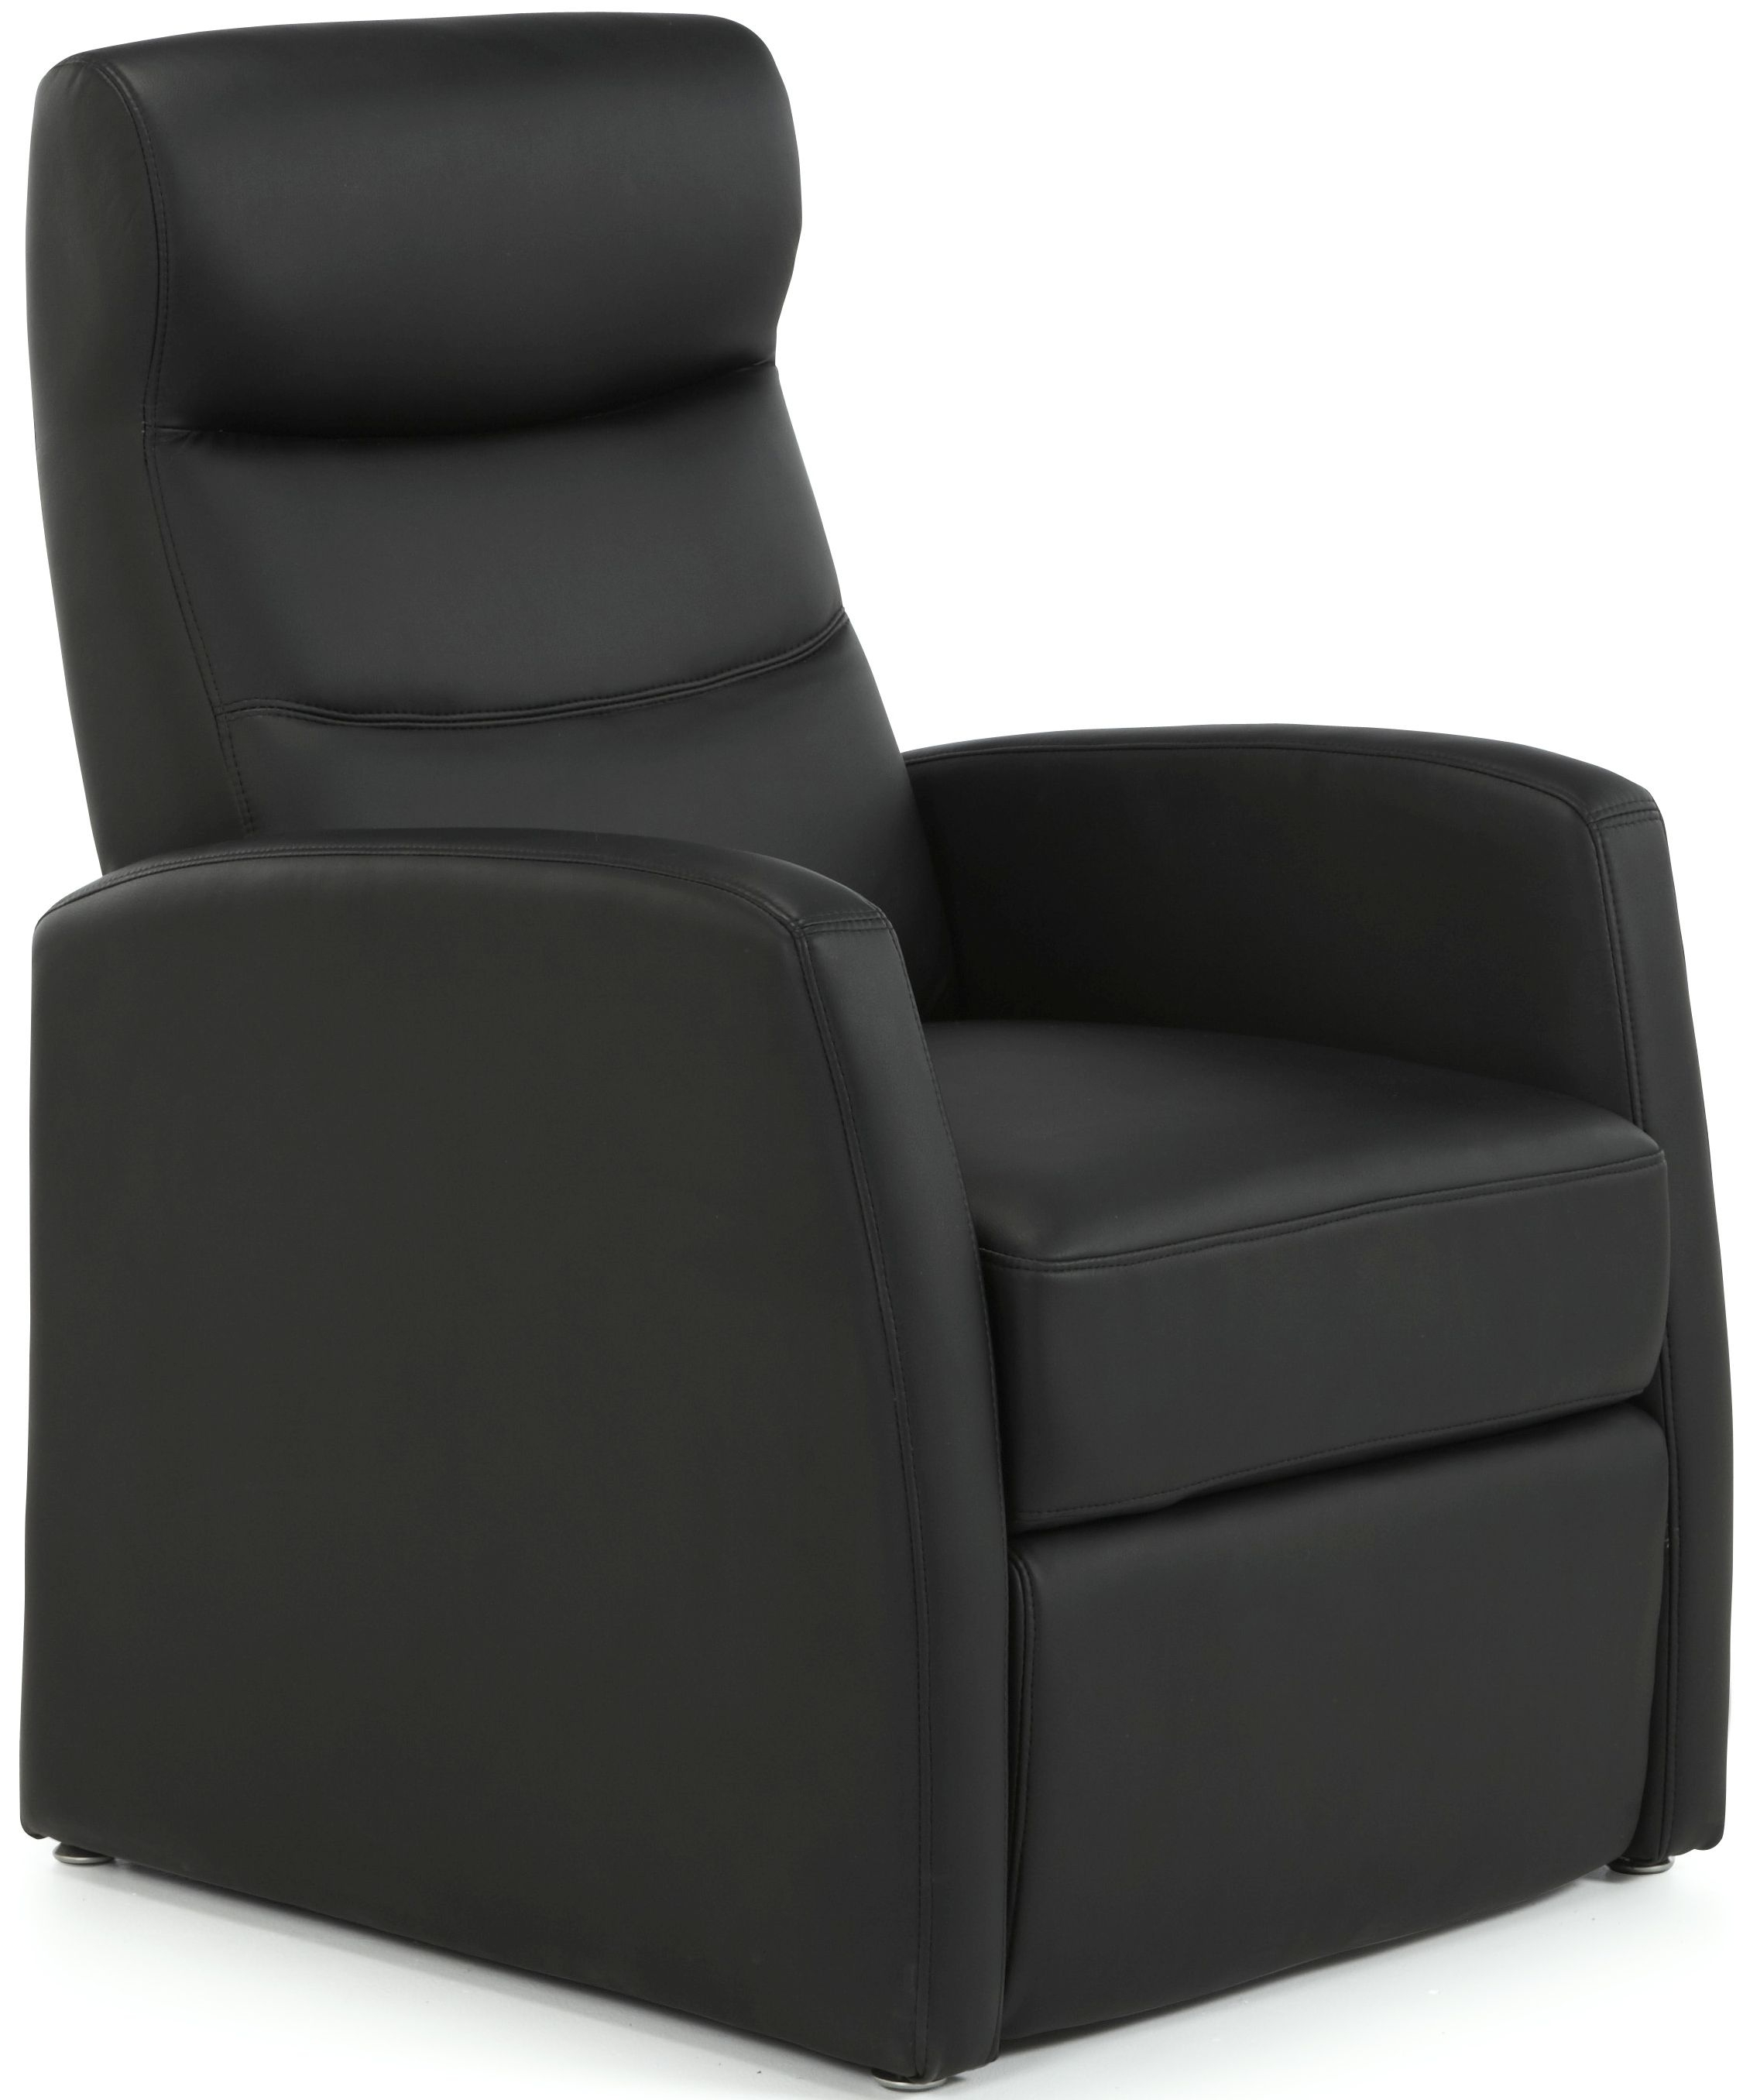 Serene Tromso Black Faux Leather Recliner Chair